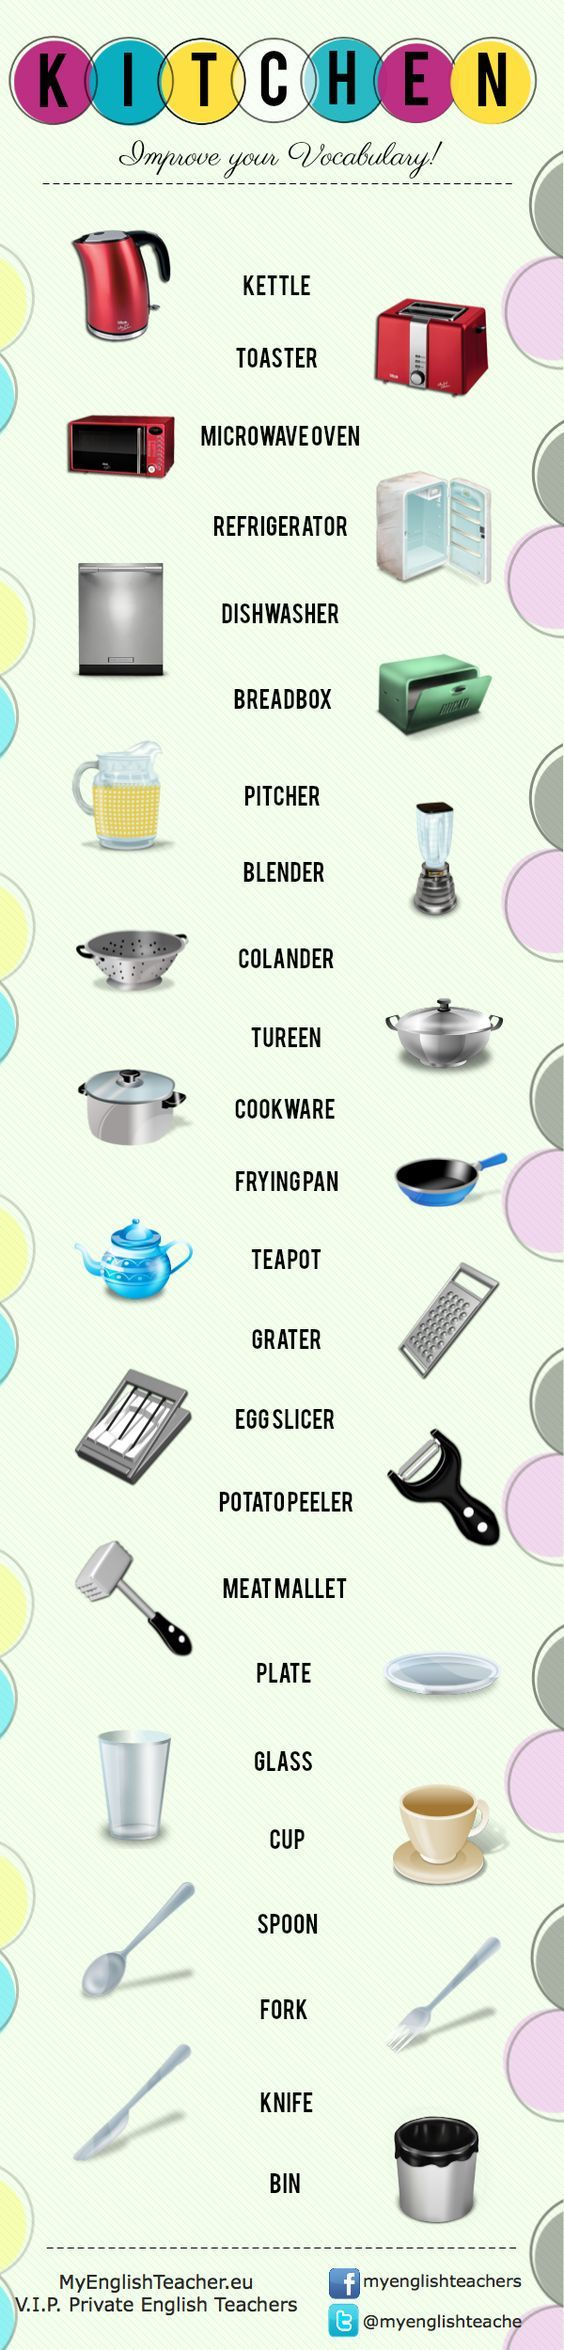 English Vocabulary - 24 Tools in the Kitchen | Learn Spanish ...